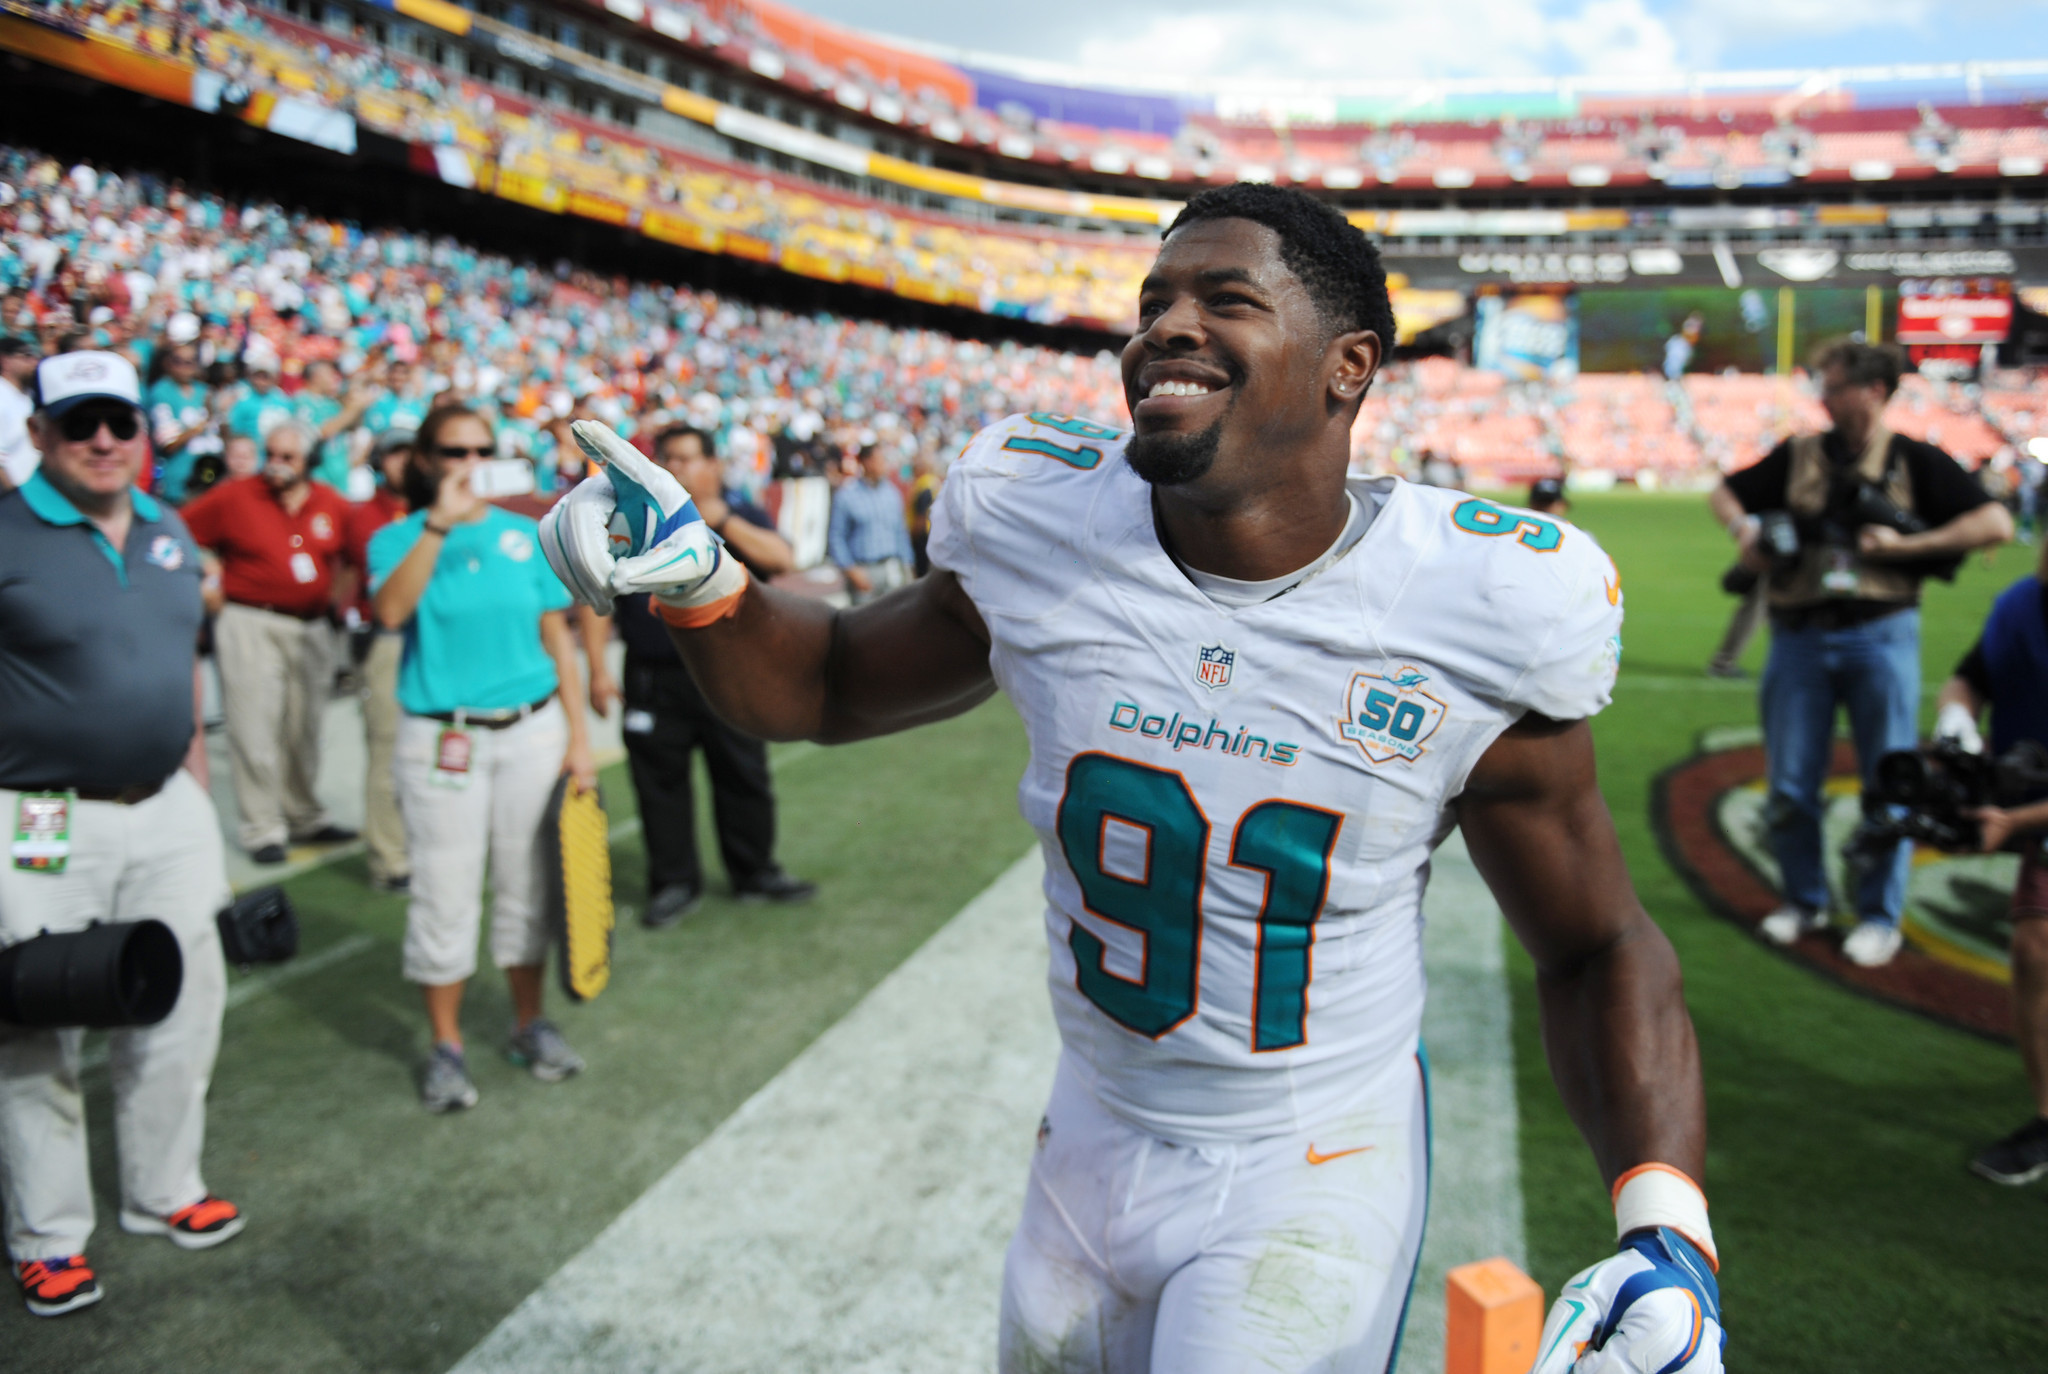 Sfl-pass-rush-could-lead-dolphins-to-glory-or-more-disappointment-in-2016-20160516